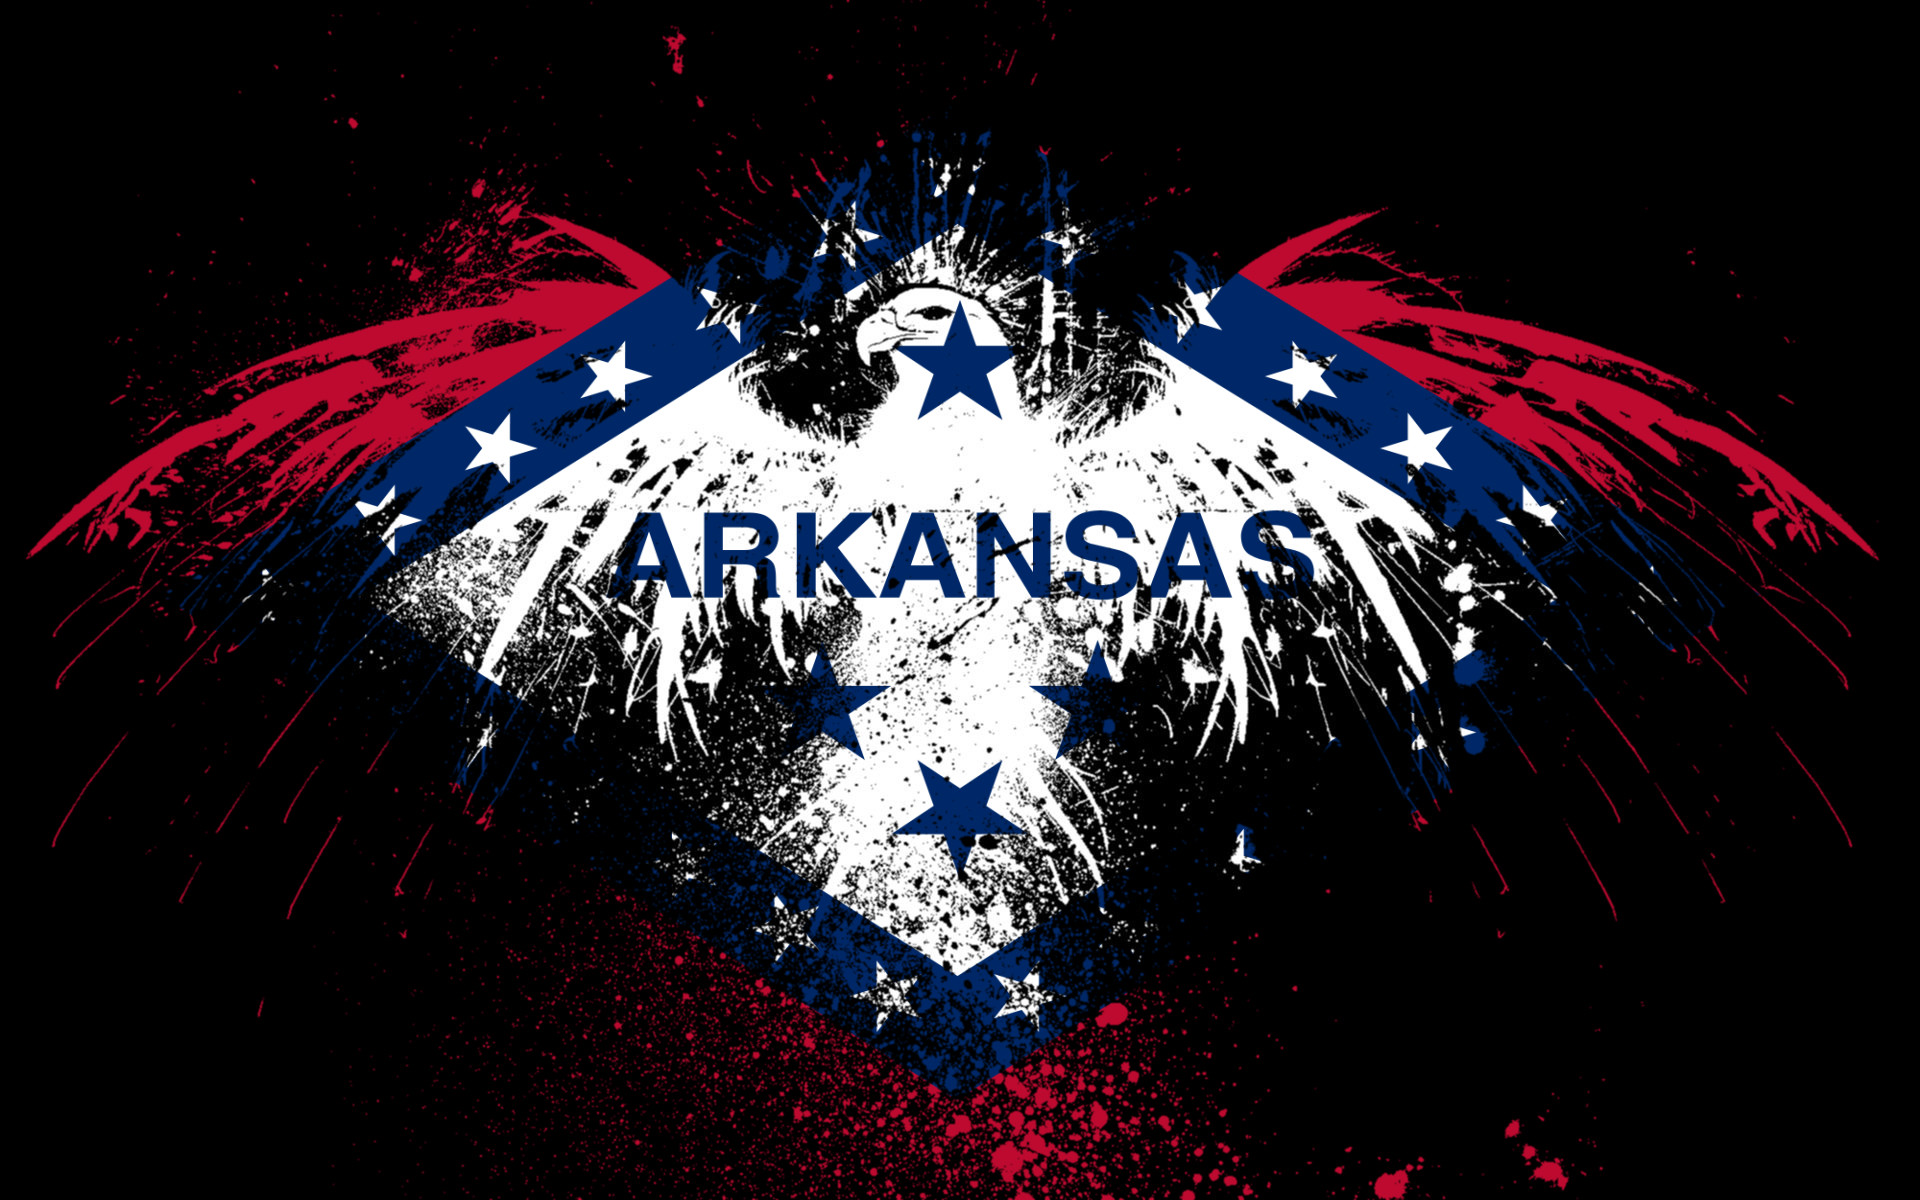 1920x1200 Collection of Arkansas Widescreen Wallpapers: 402452756,  px